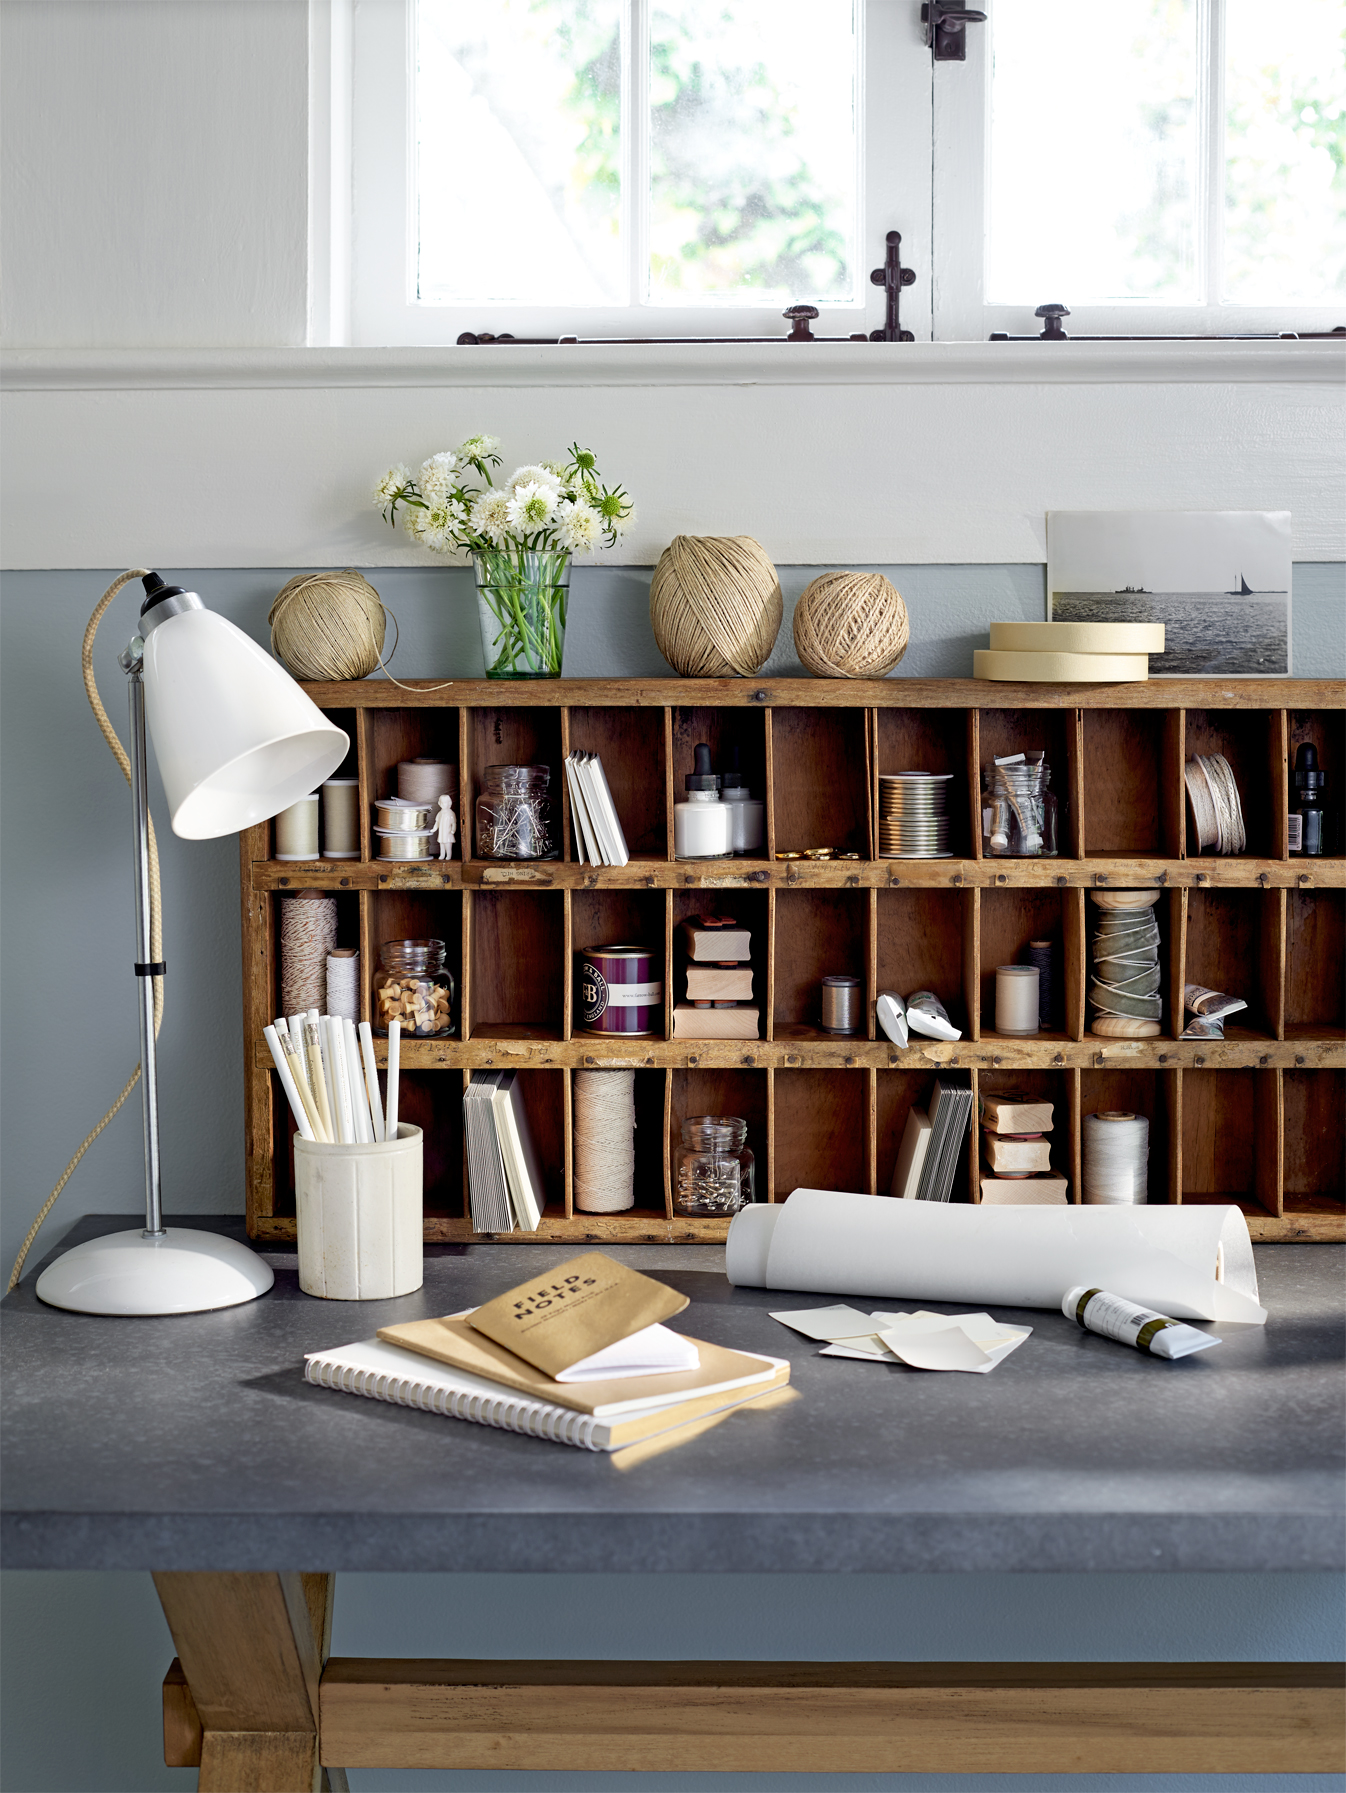 How to Organize Using Antiques - Decorating With Antiques